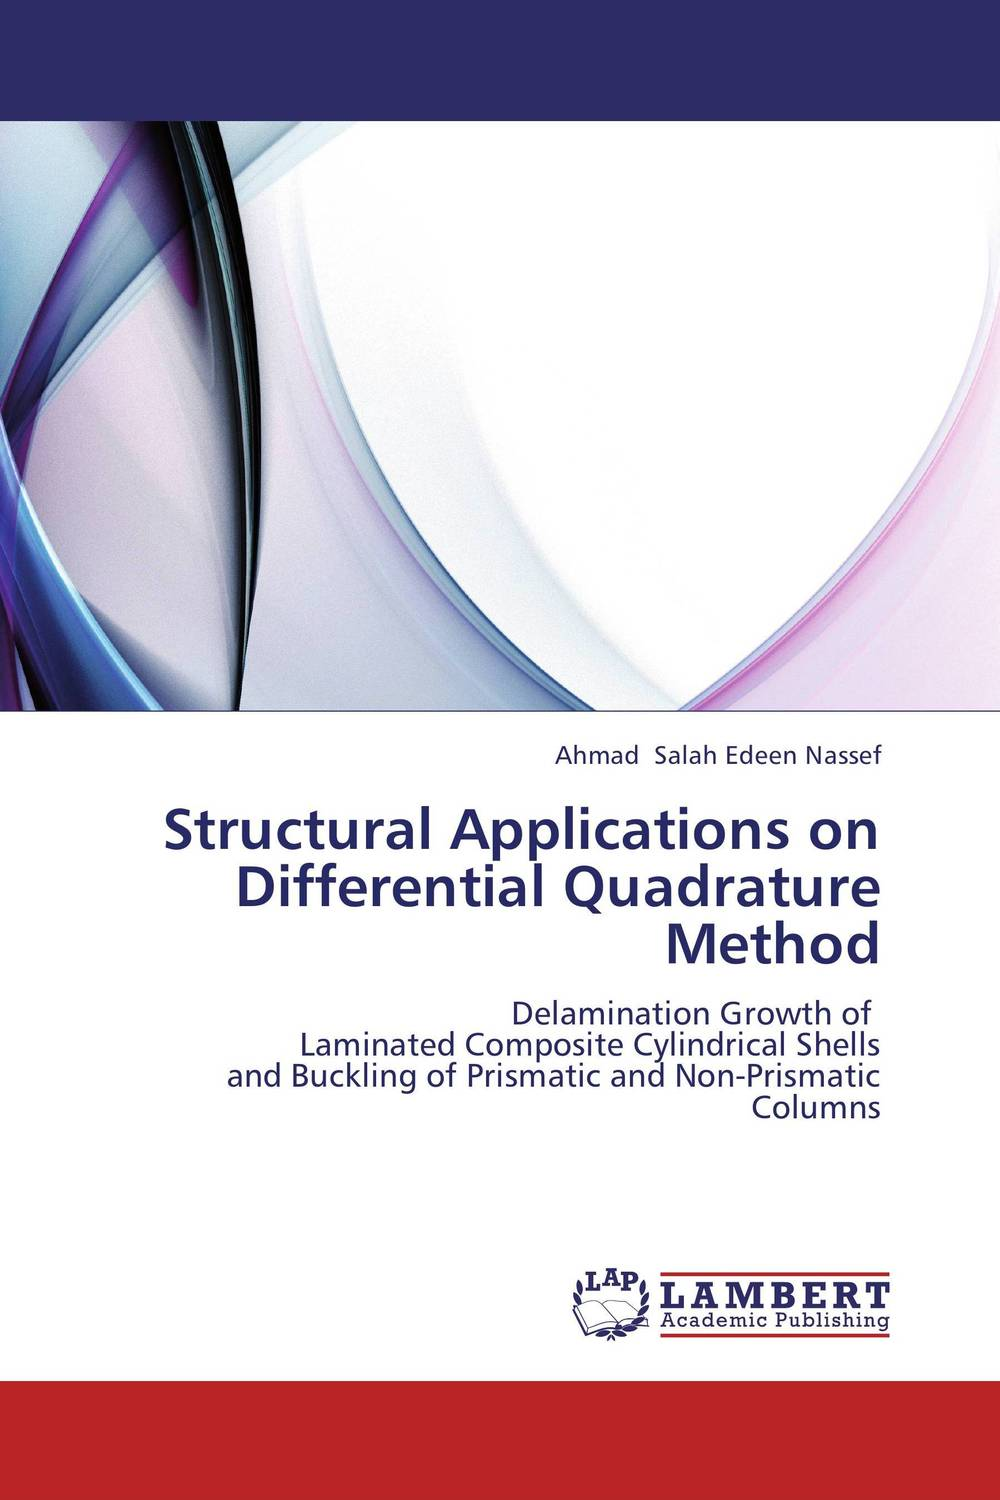 Structural Applications on Differential Quadrature Method mcfadden structural analysis of discrete data w ith econometric applications